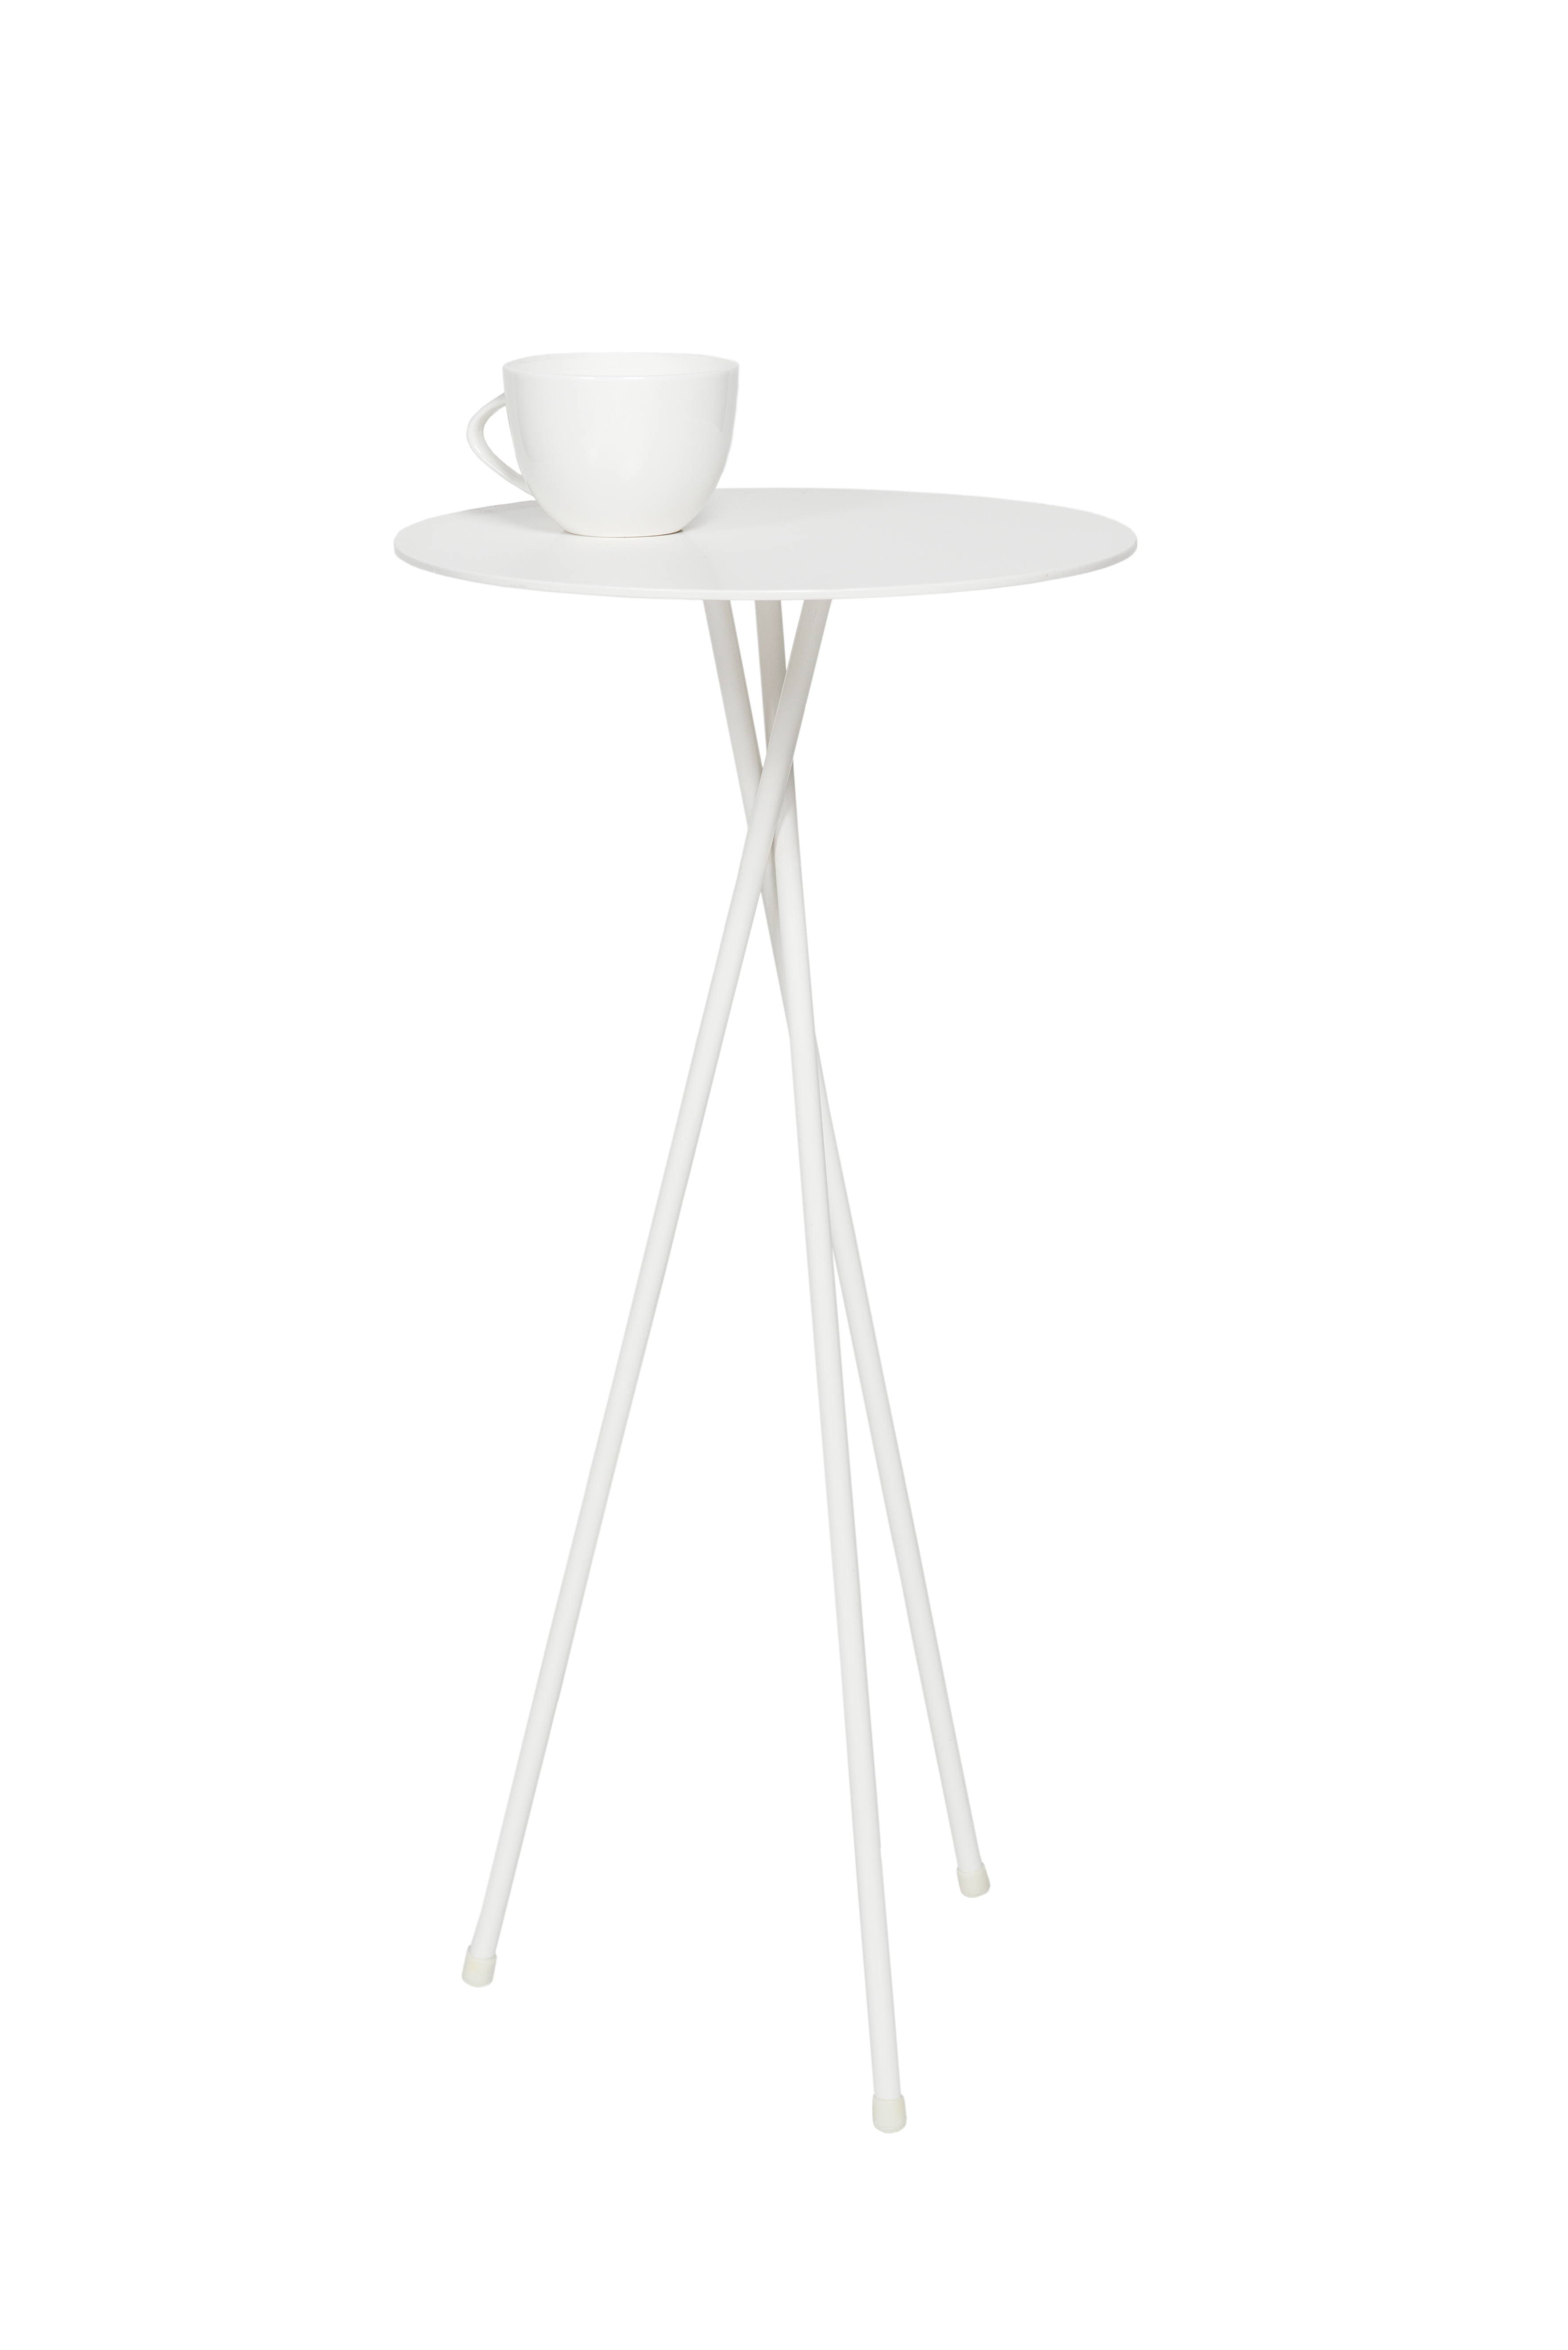 design bijzettafel Mork side table